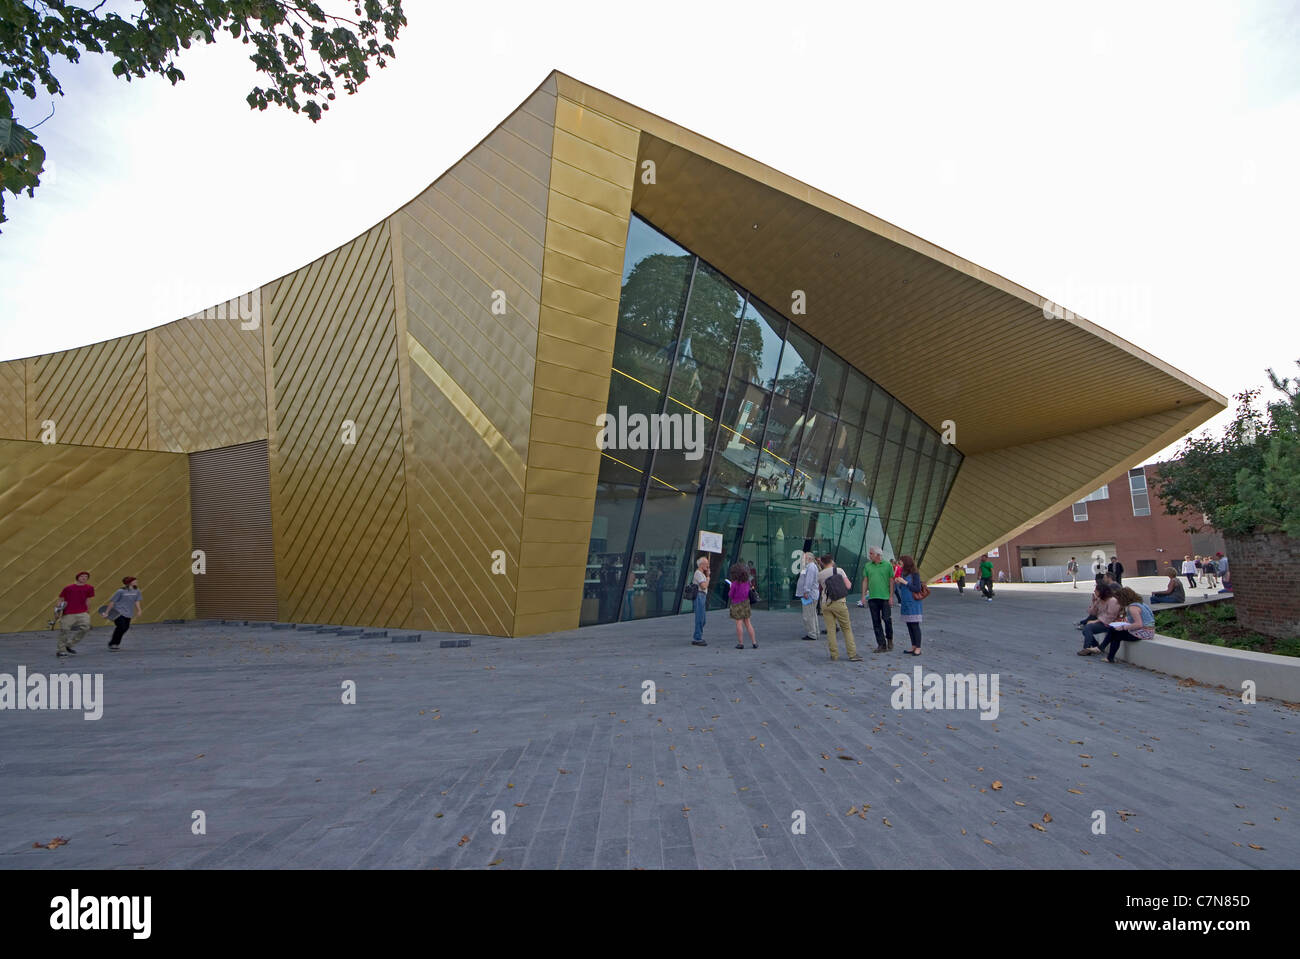 Colchesters Firstsite arts centre - Stock Image